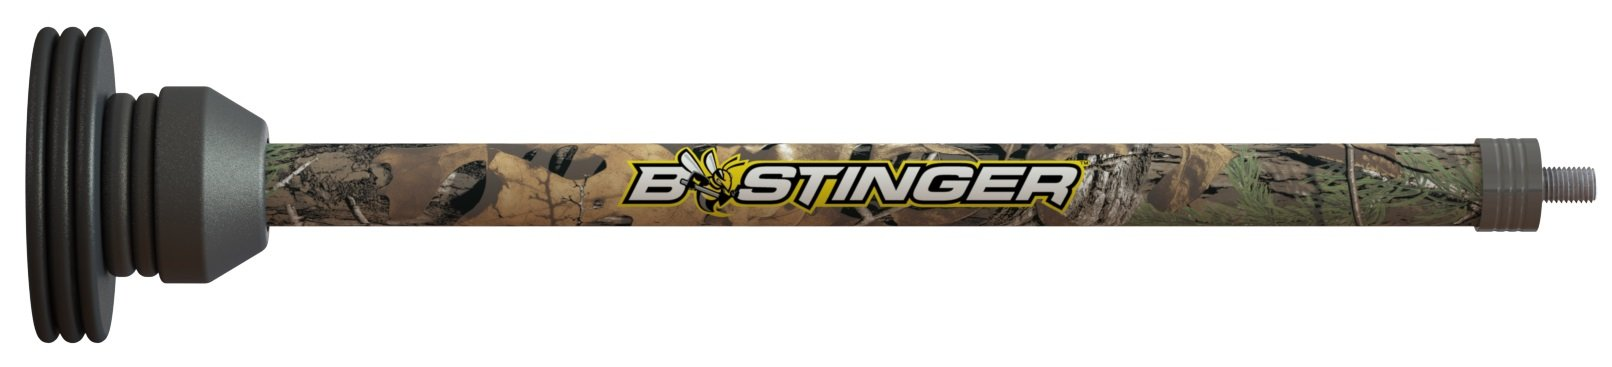 Bee Stinger Pro Hunter PHMN12XT MAXX Stabilizer 12''/Realtree Xtra by Bee Stinger